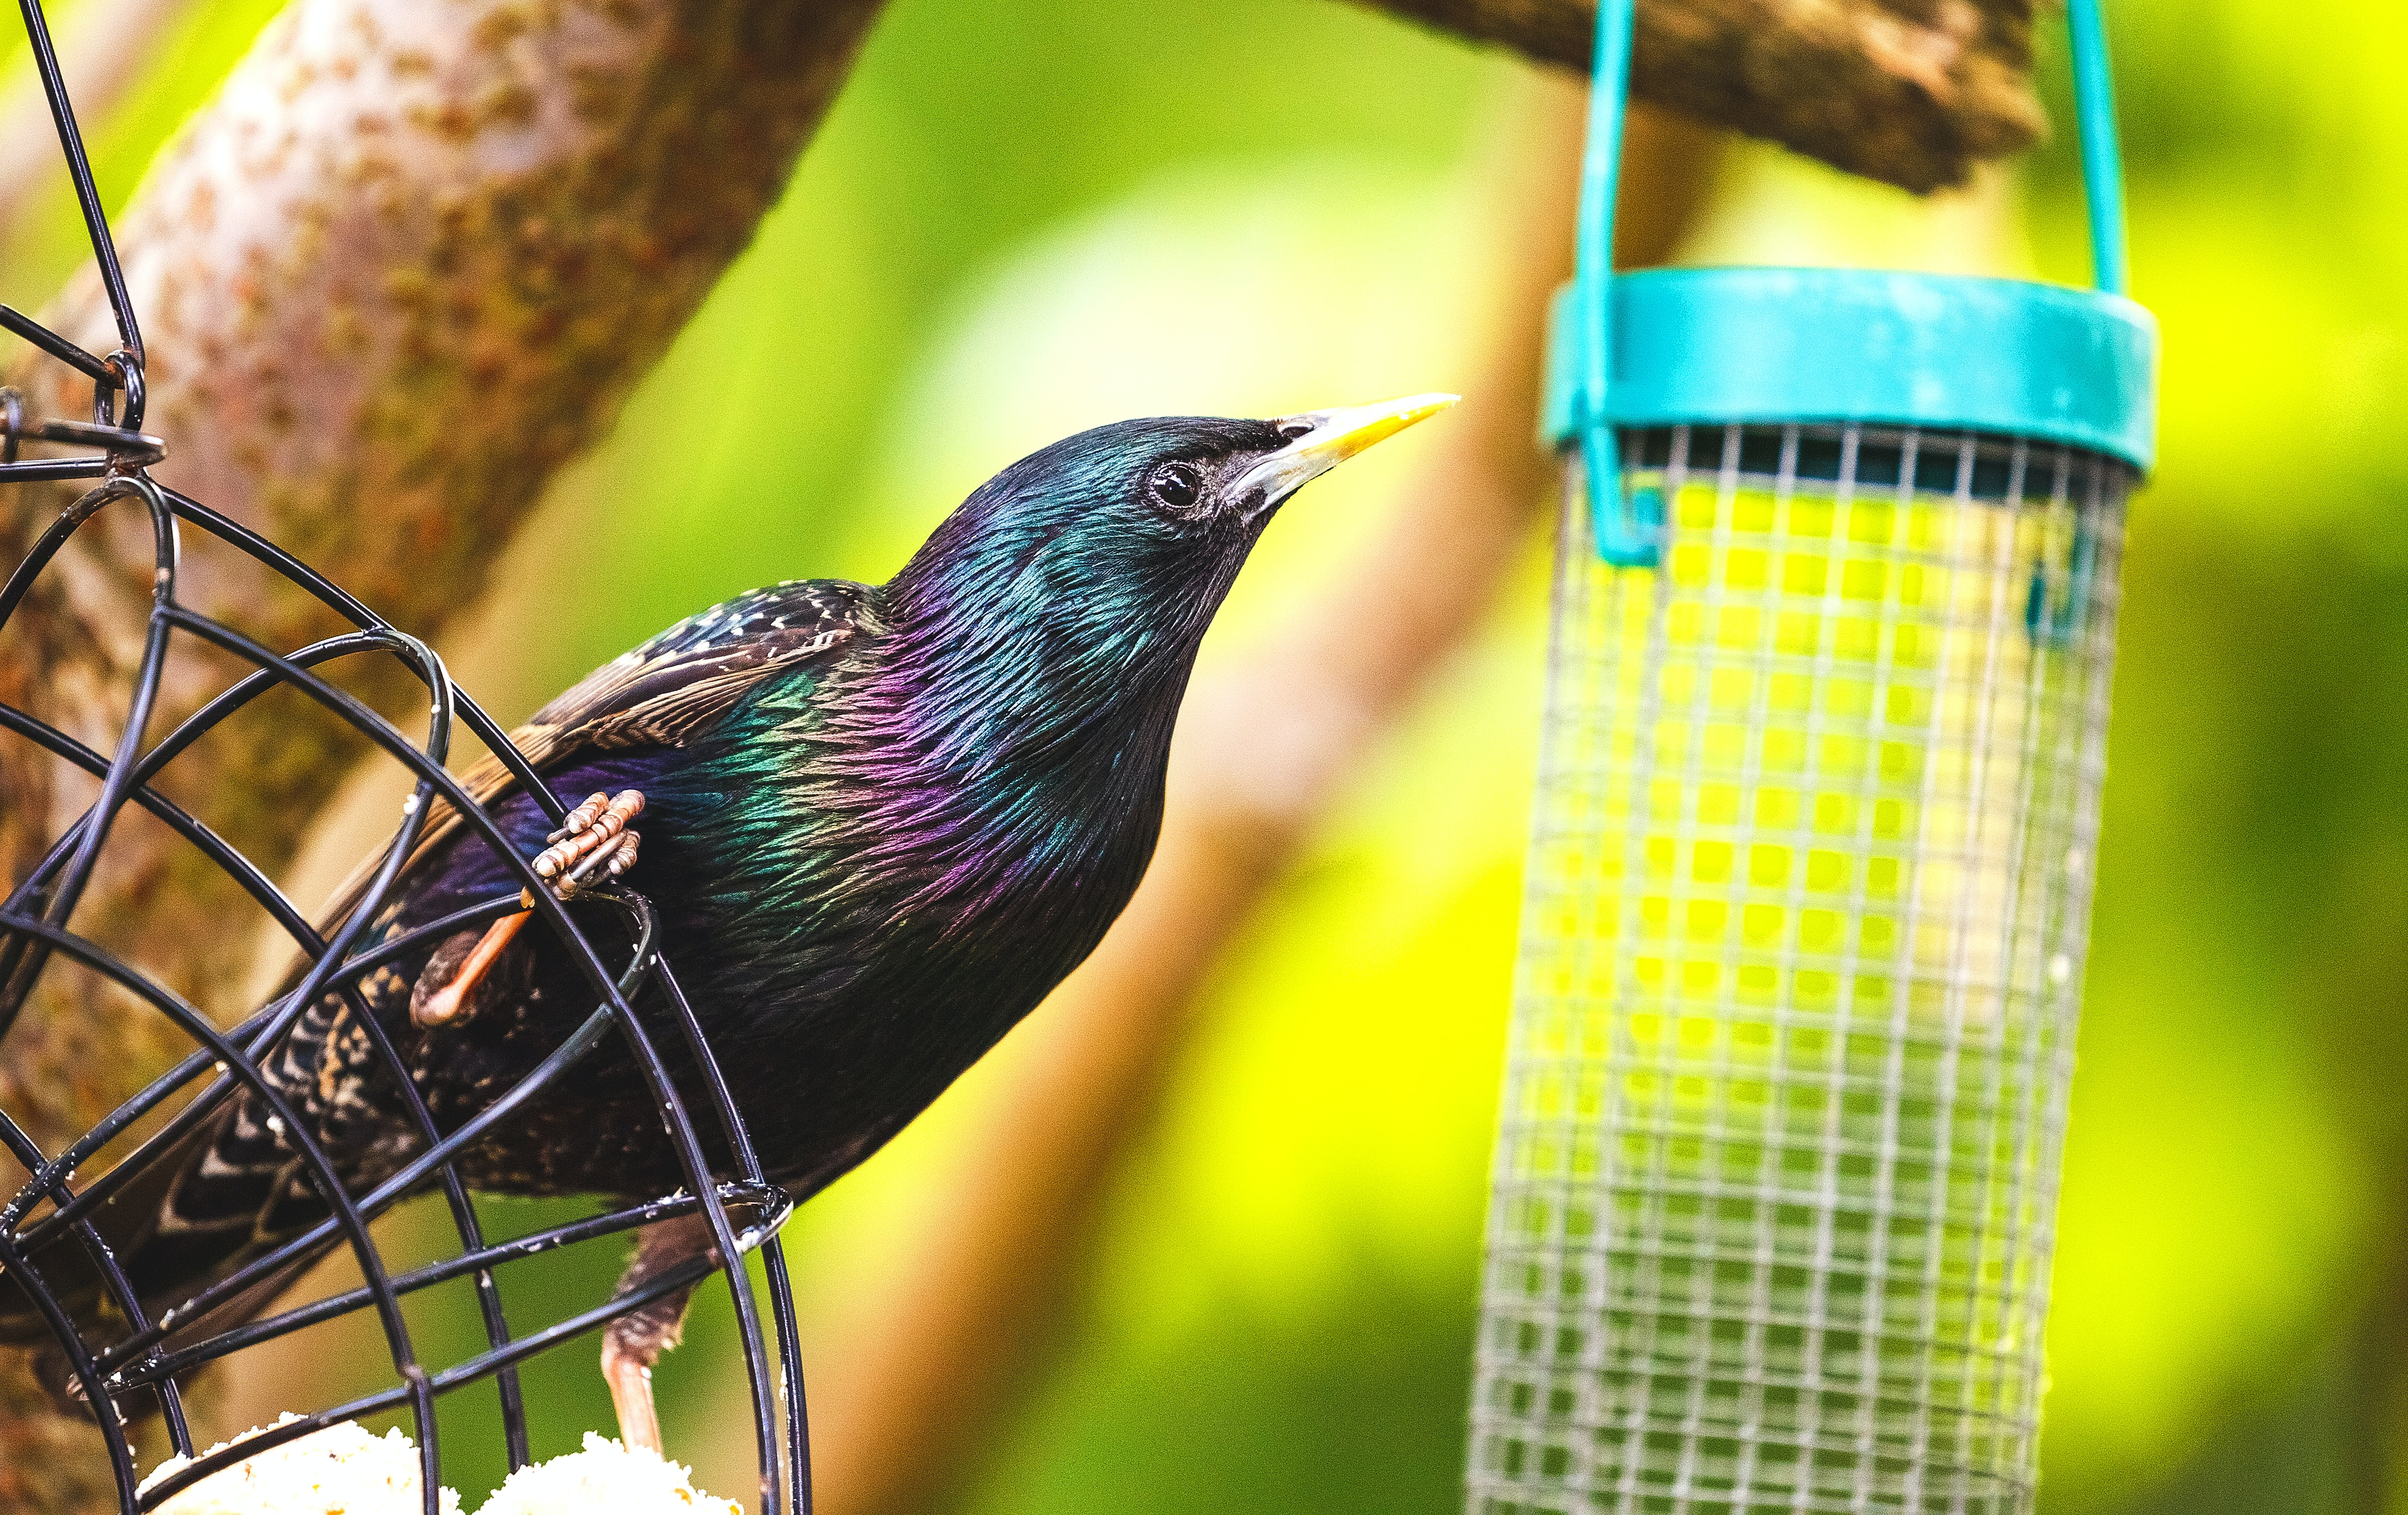 Starling eating at a garden feeding station